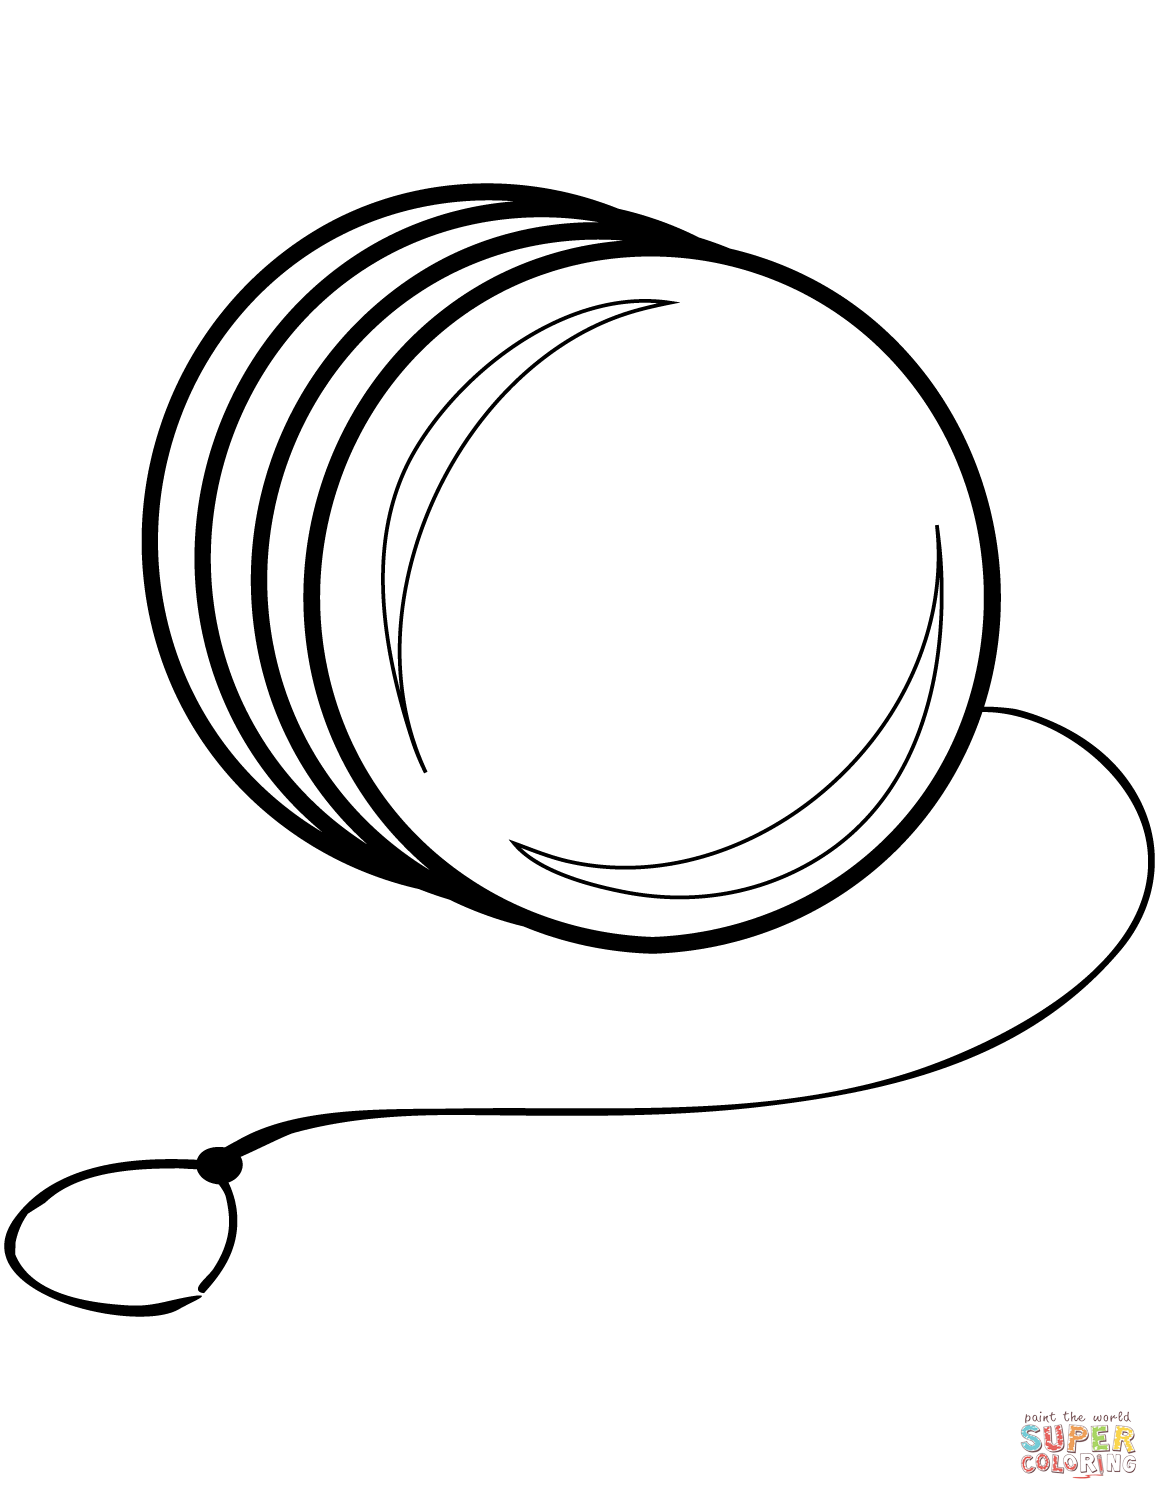 Yoyo Coloring Pages